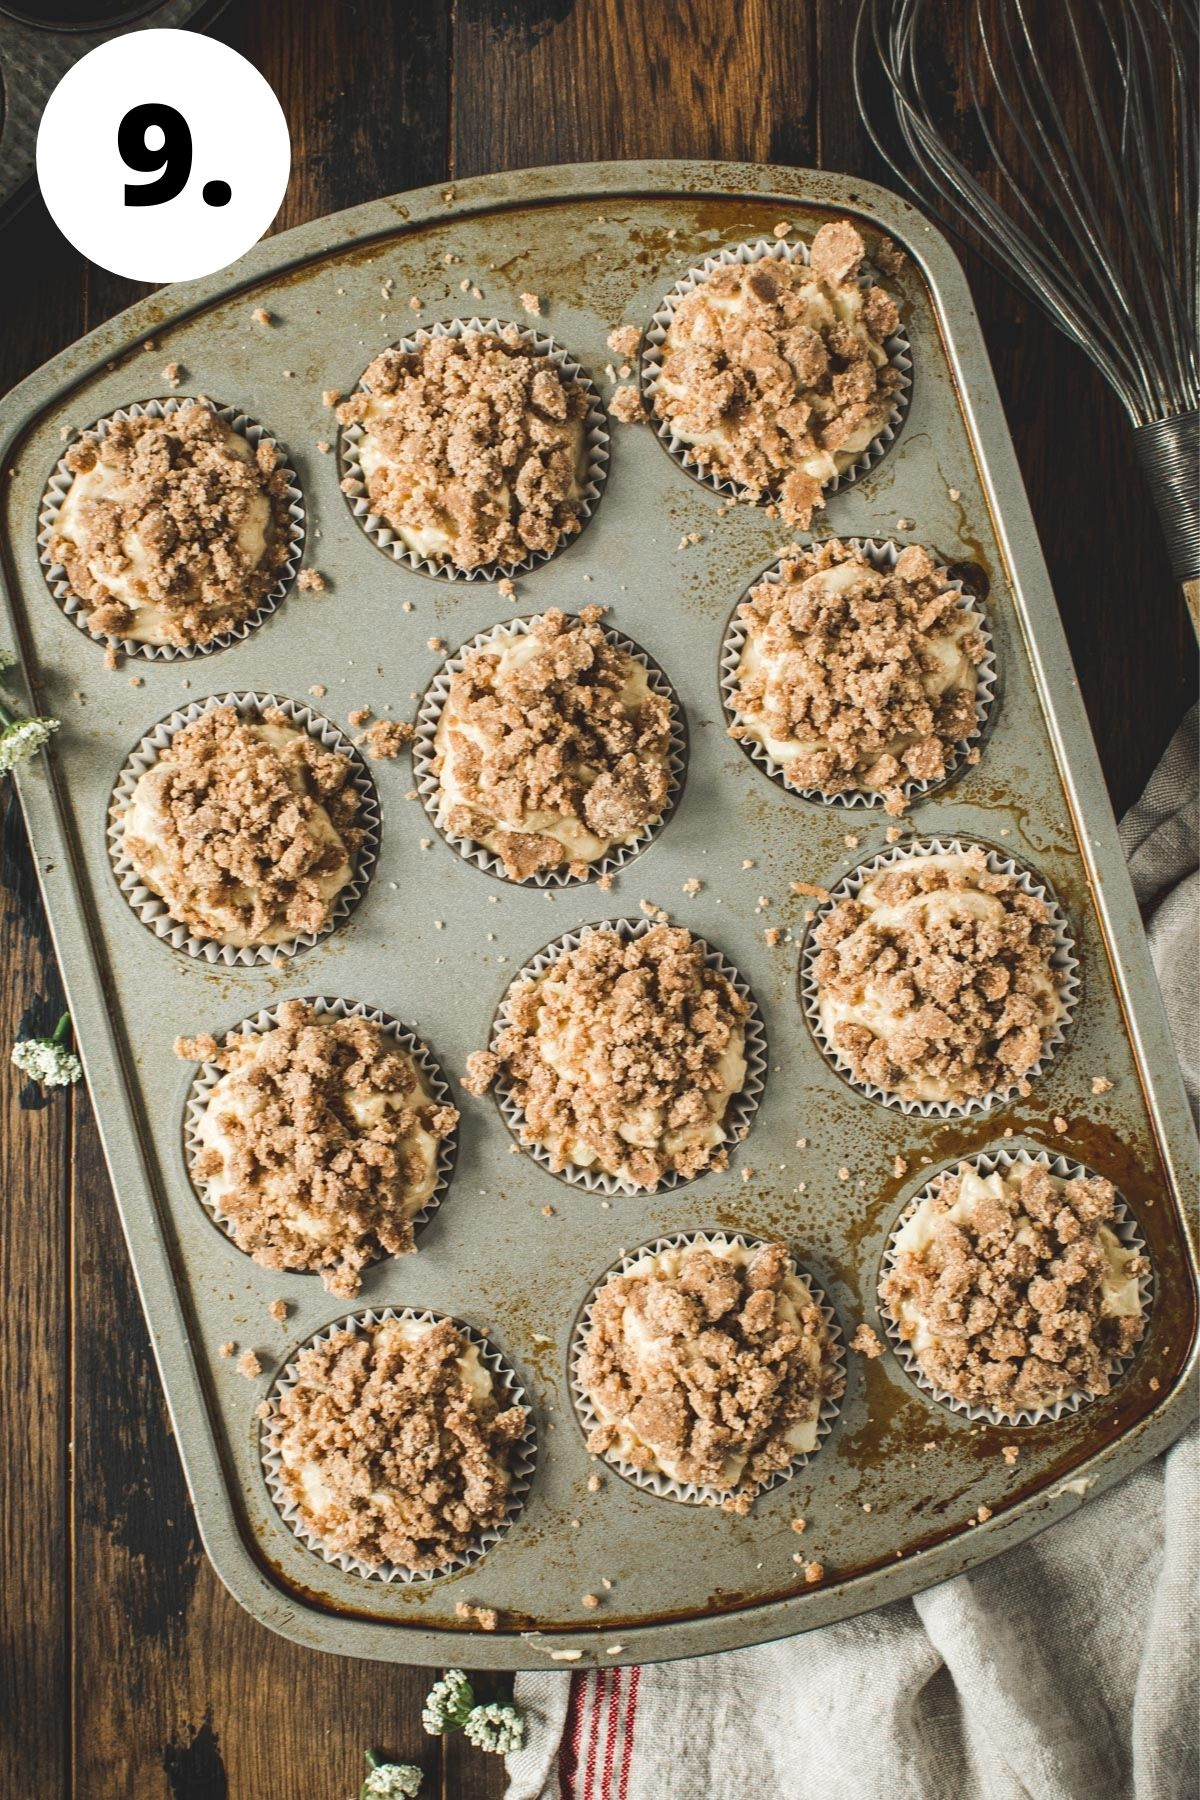 Apple crumble muffins process step 9.